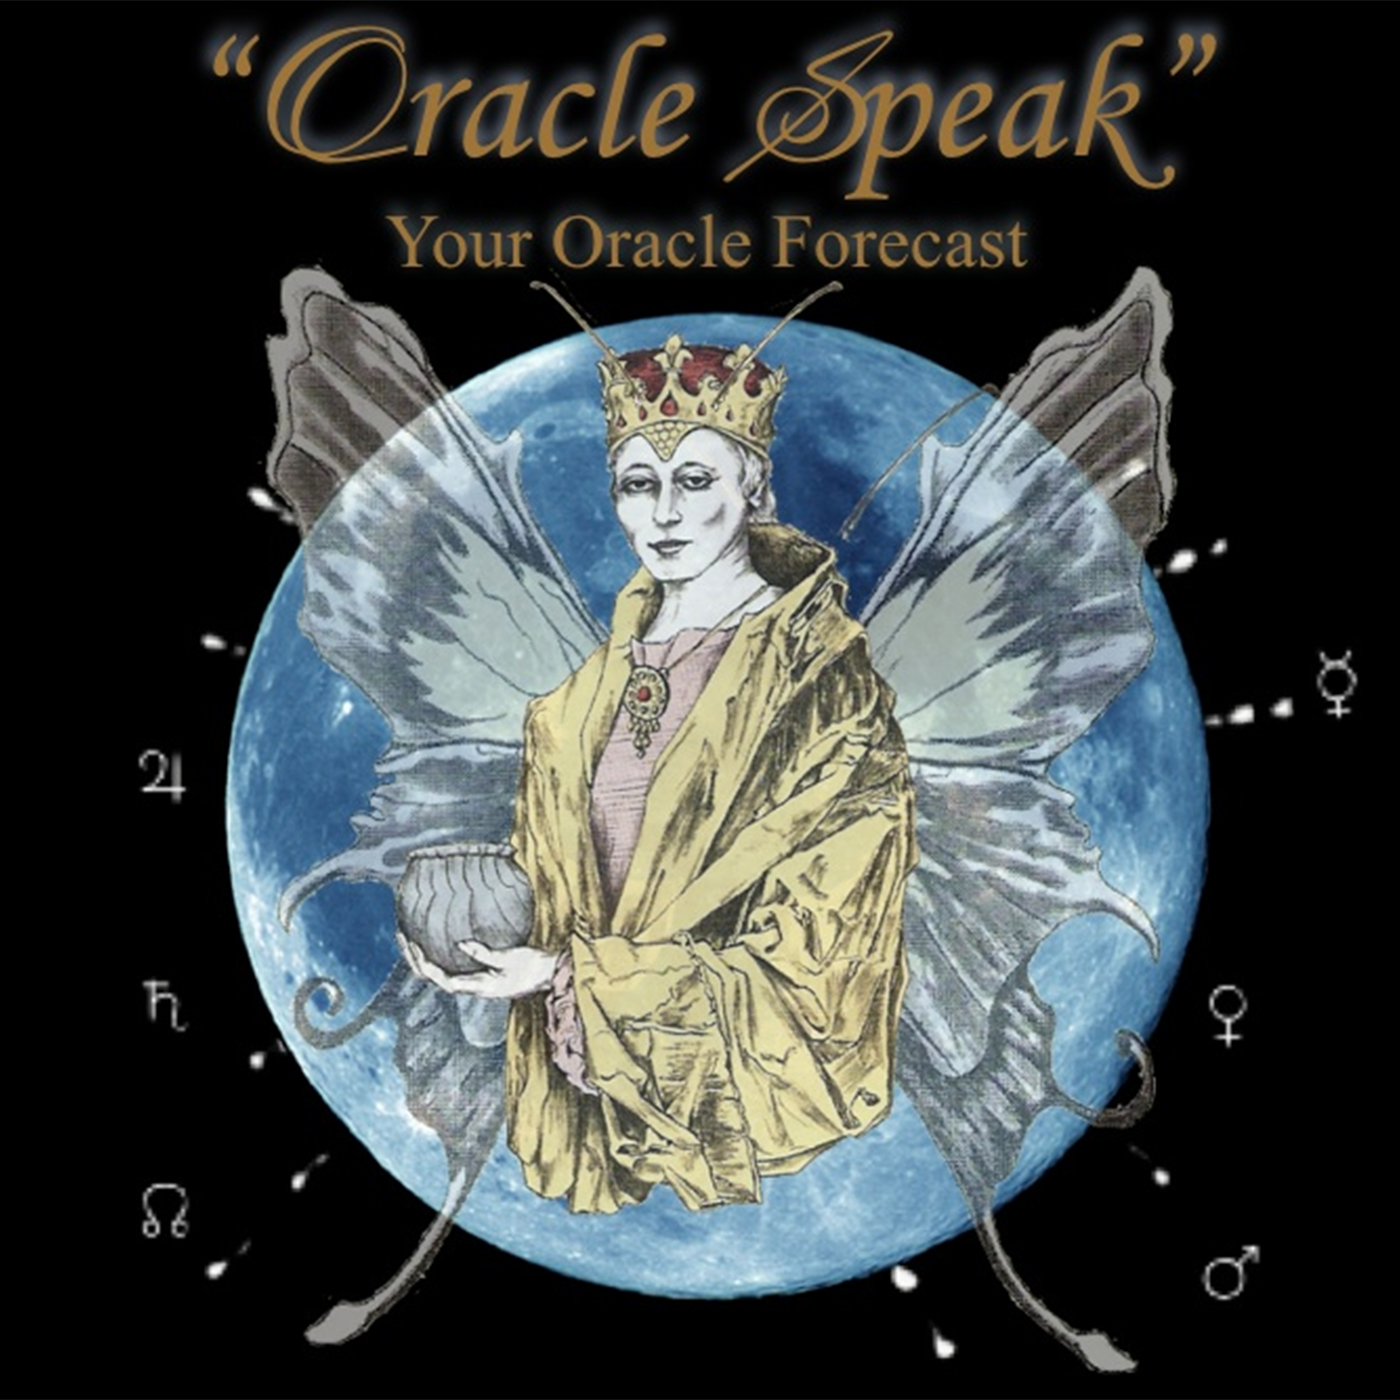 Oracle Speak